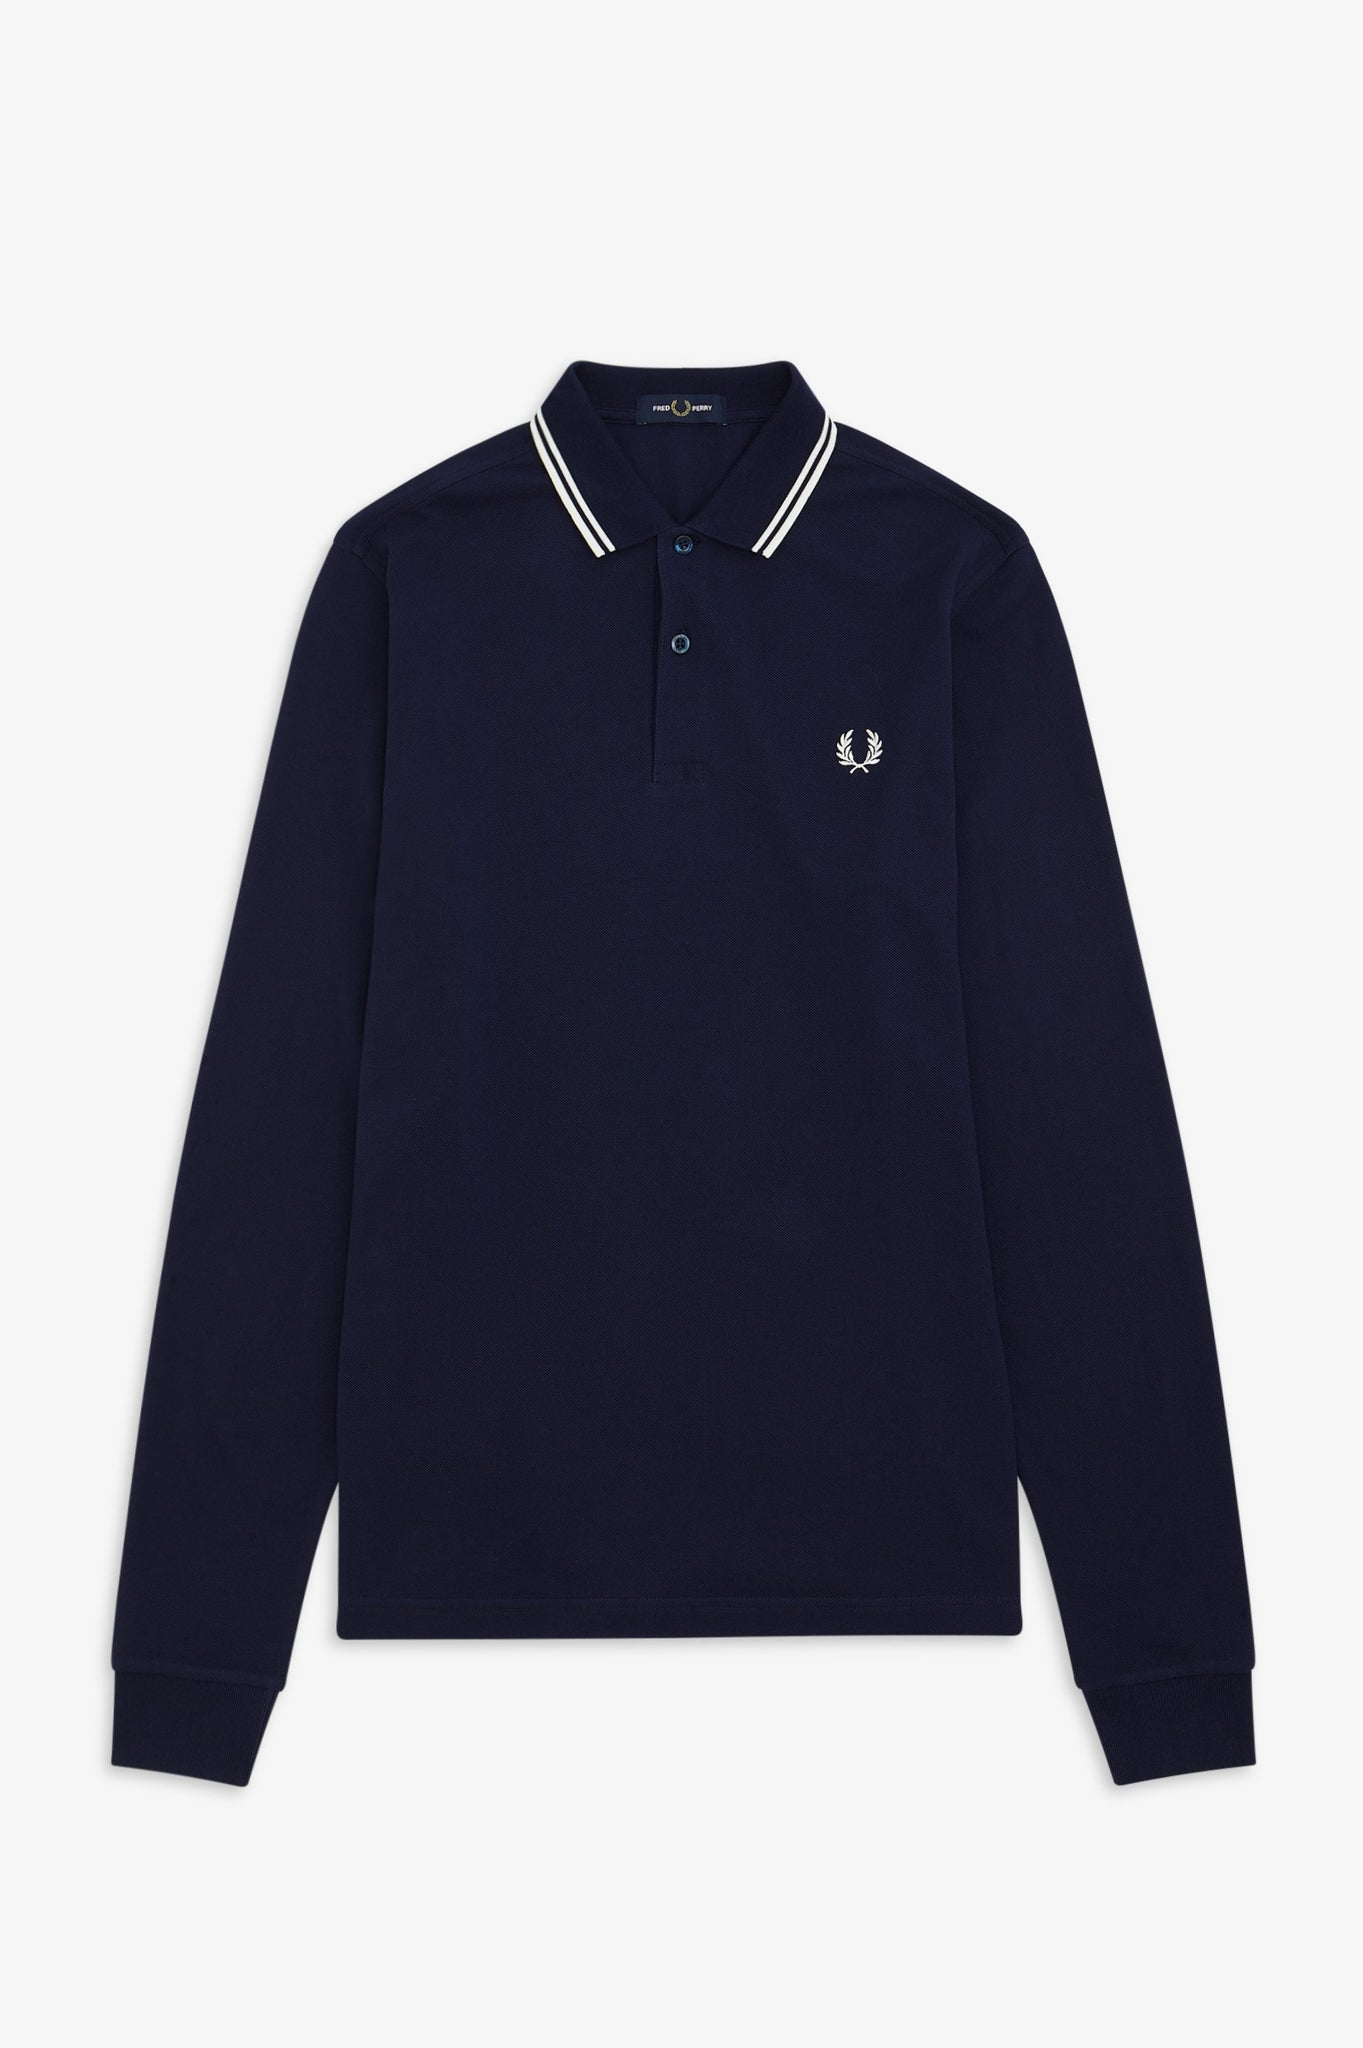 Fred Perry Carbon Blue Long Sleeve Polo with White Twin Tipping